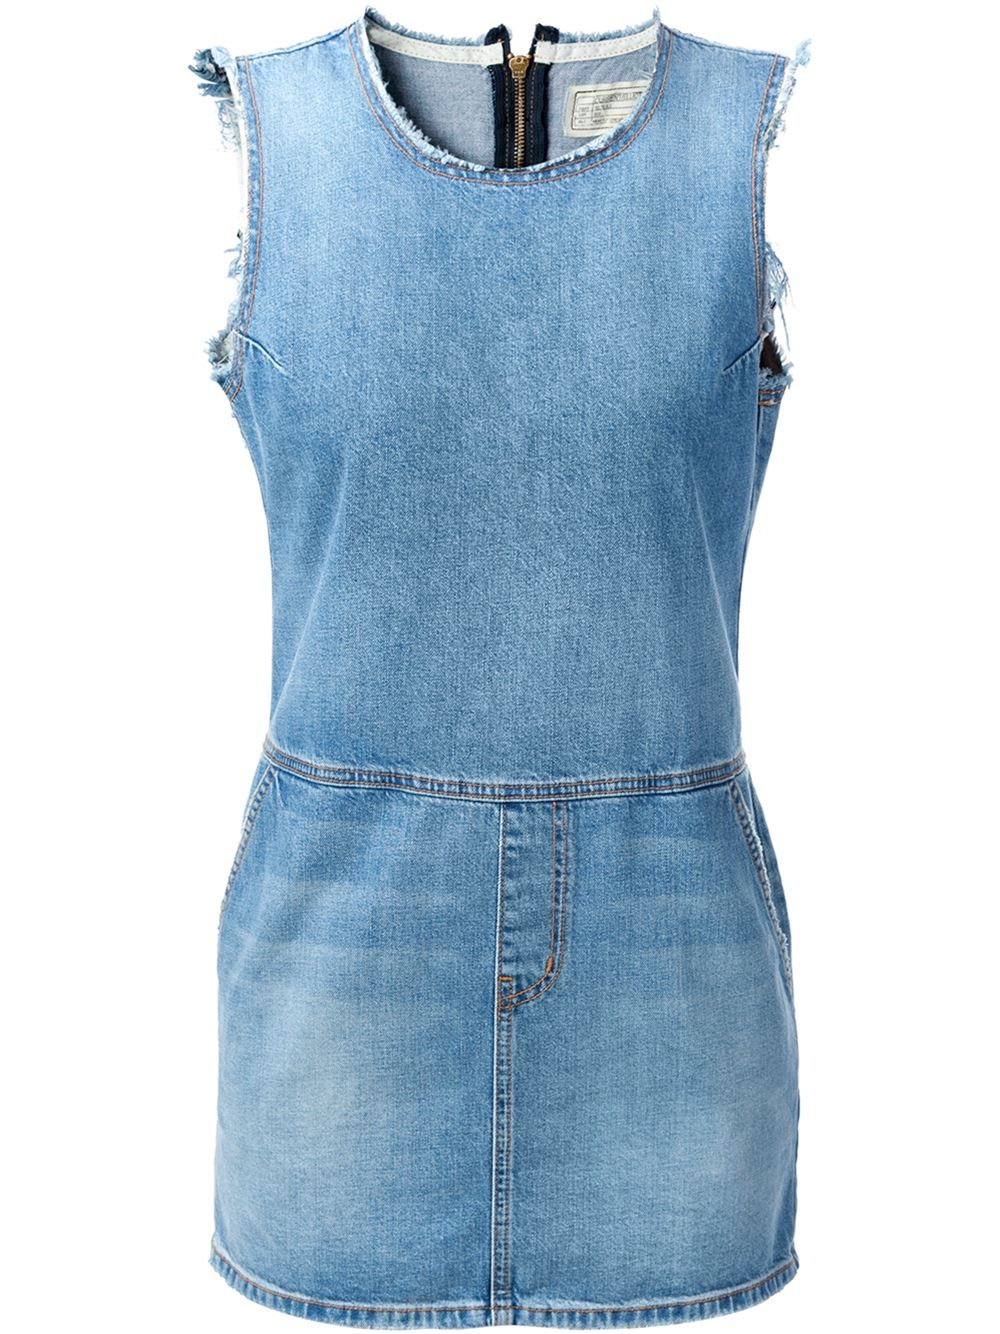 Current/elliott Short Denim Dress - Petra Teufel - Farfetch.com